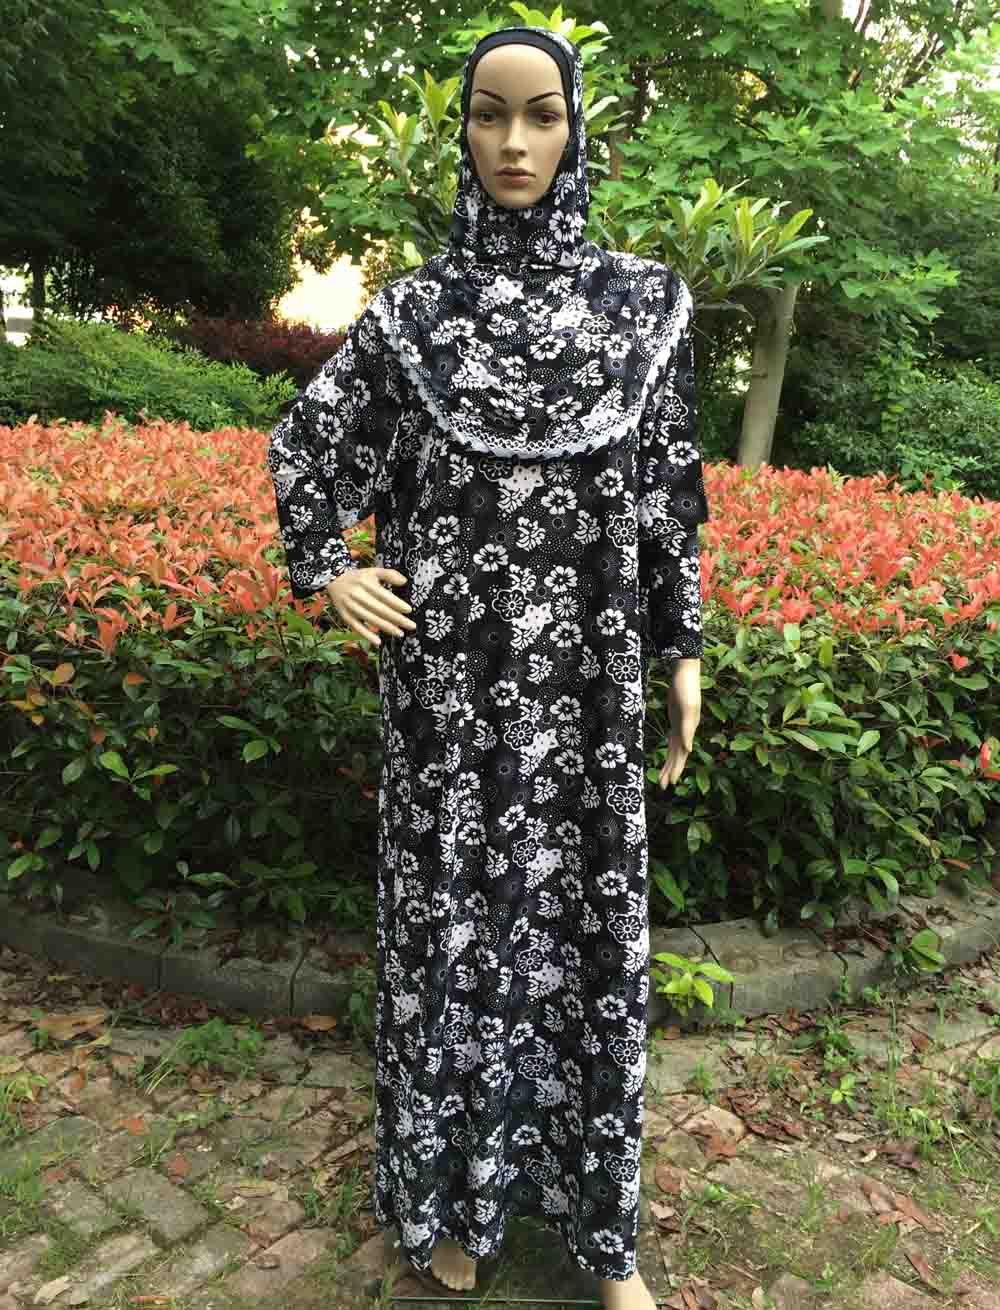 Free shipping 10pcs/lot Muslim Maxi women printed prayer jilbabs and abayas Dress with Wholesale prices ca-04 free shipping cg70212a0 touchscreen 10pcs lower prices